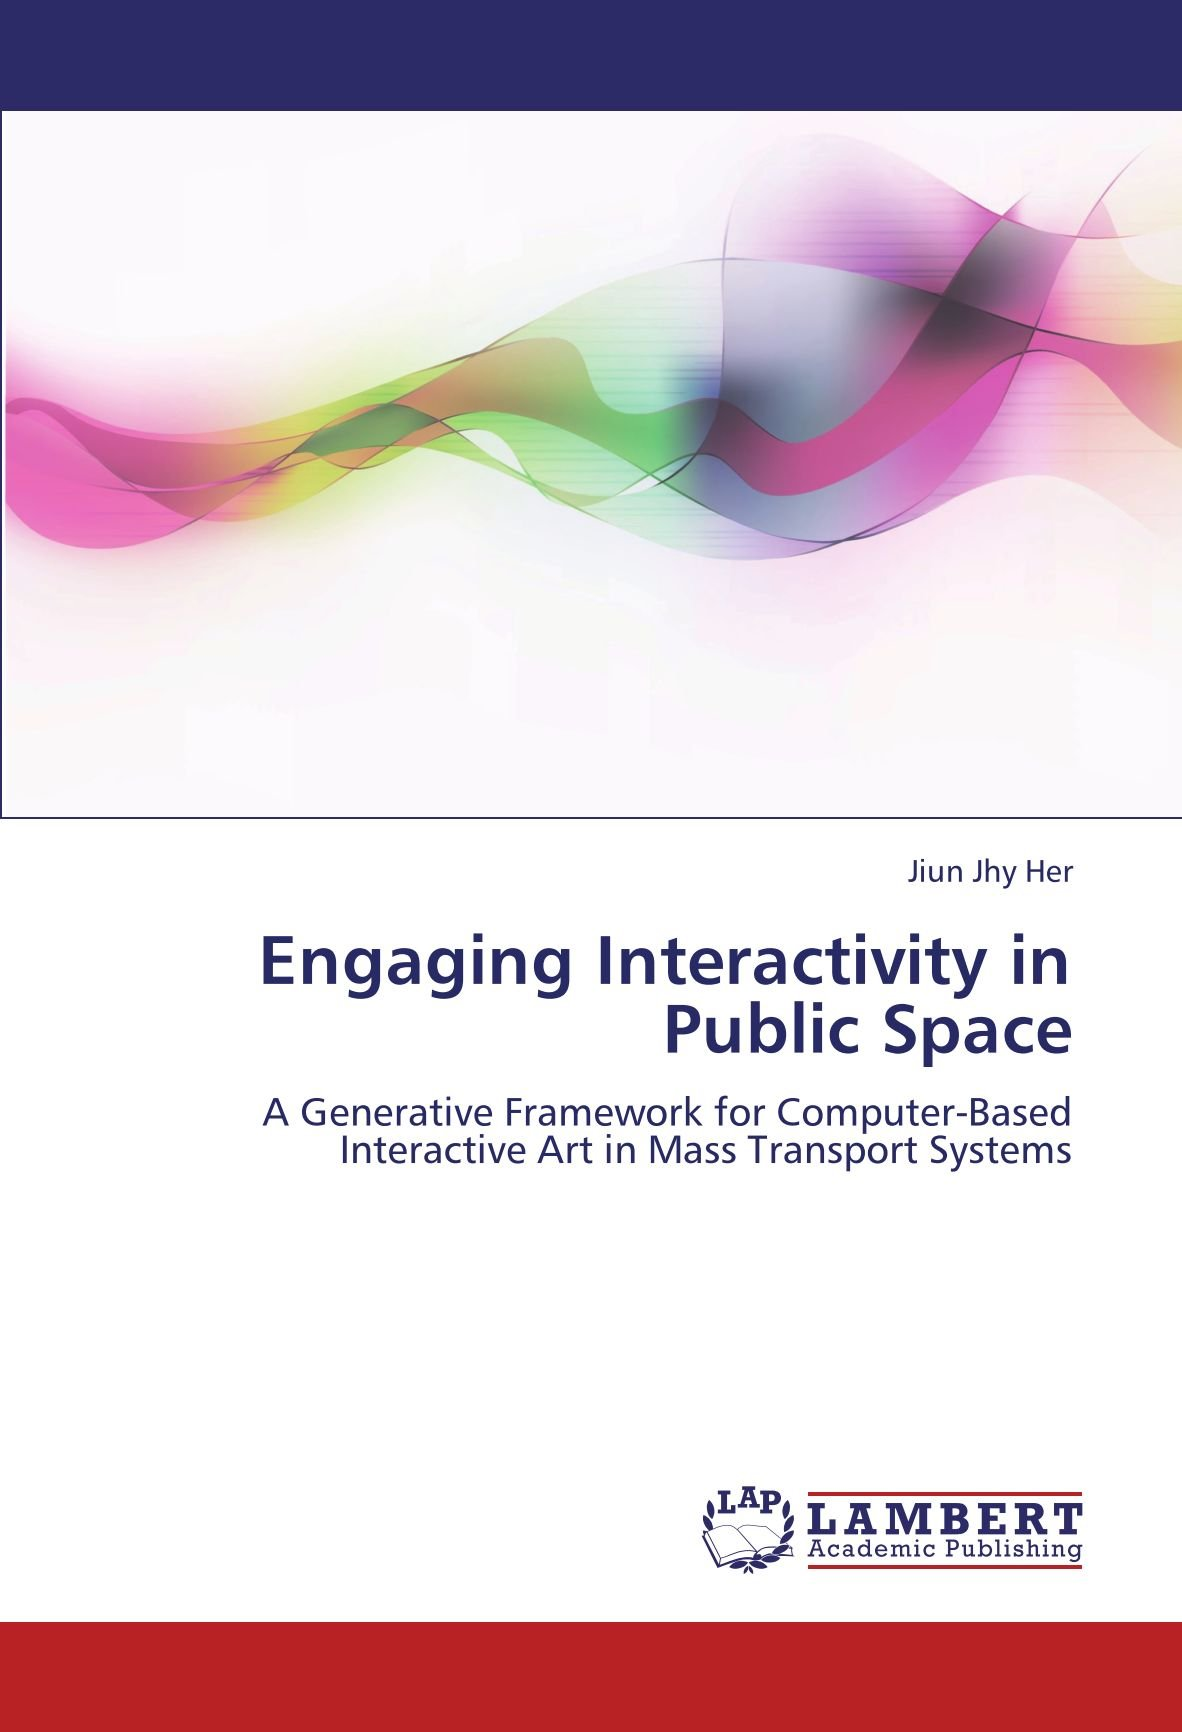 Download Engaging Interactivity in Public Space: A Generative Framework for Computer-Based Interactive Art in Mass Transport Systems PDF